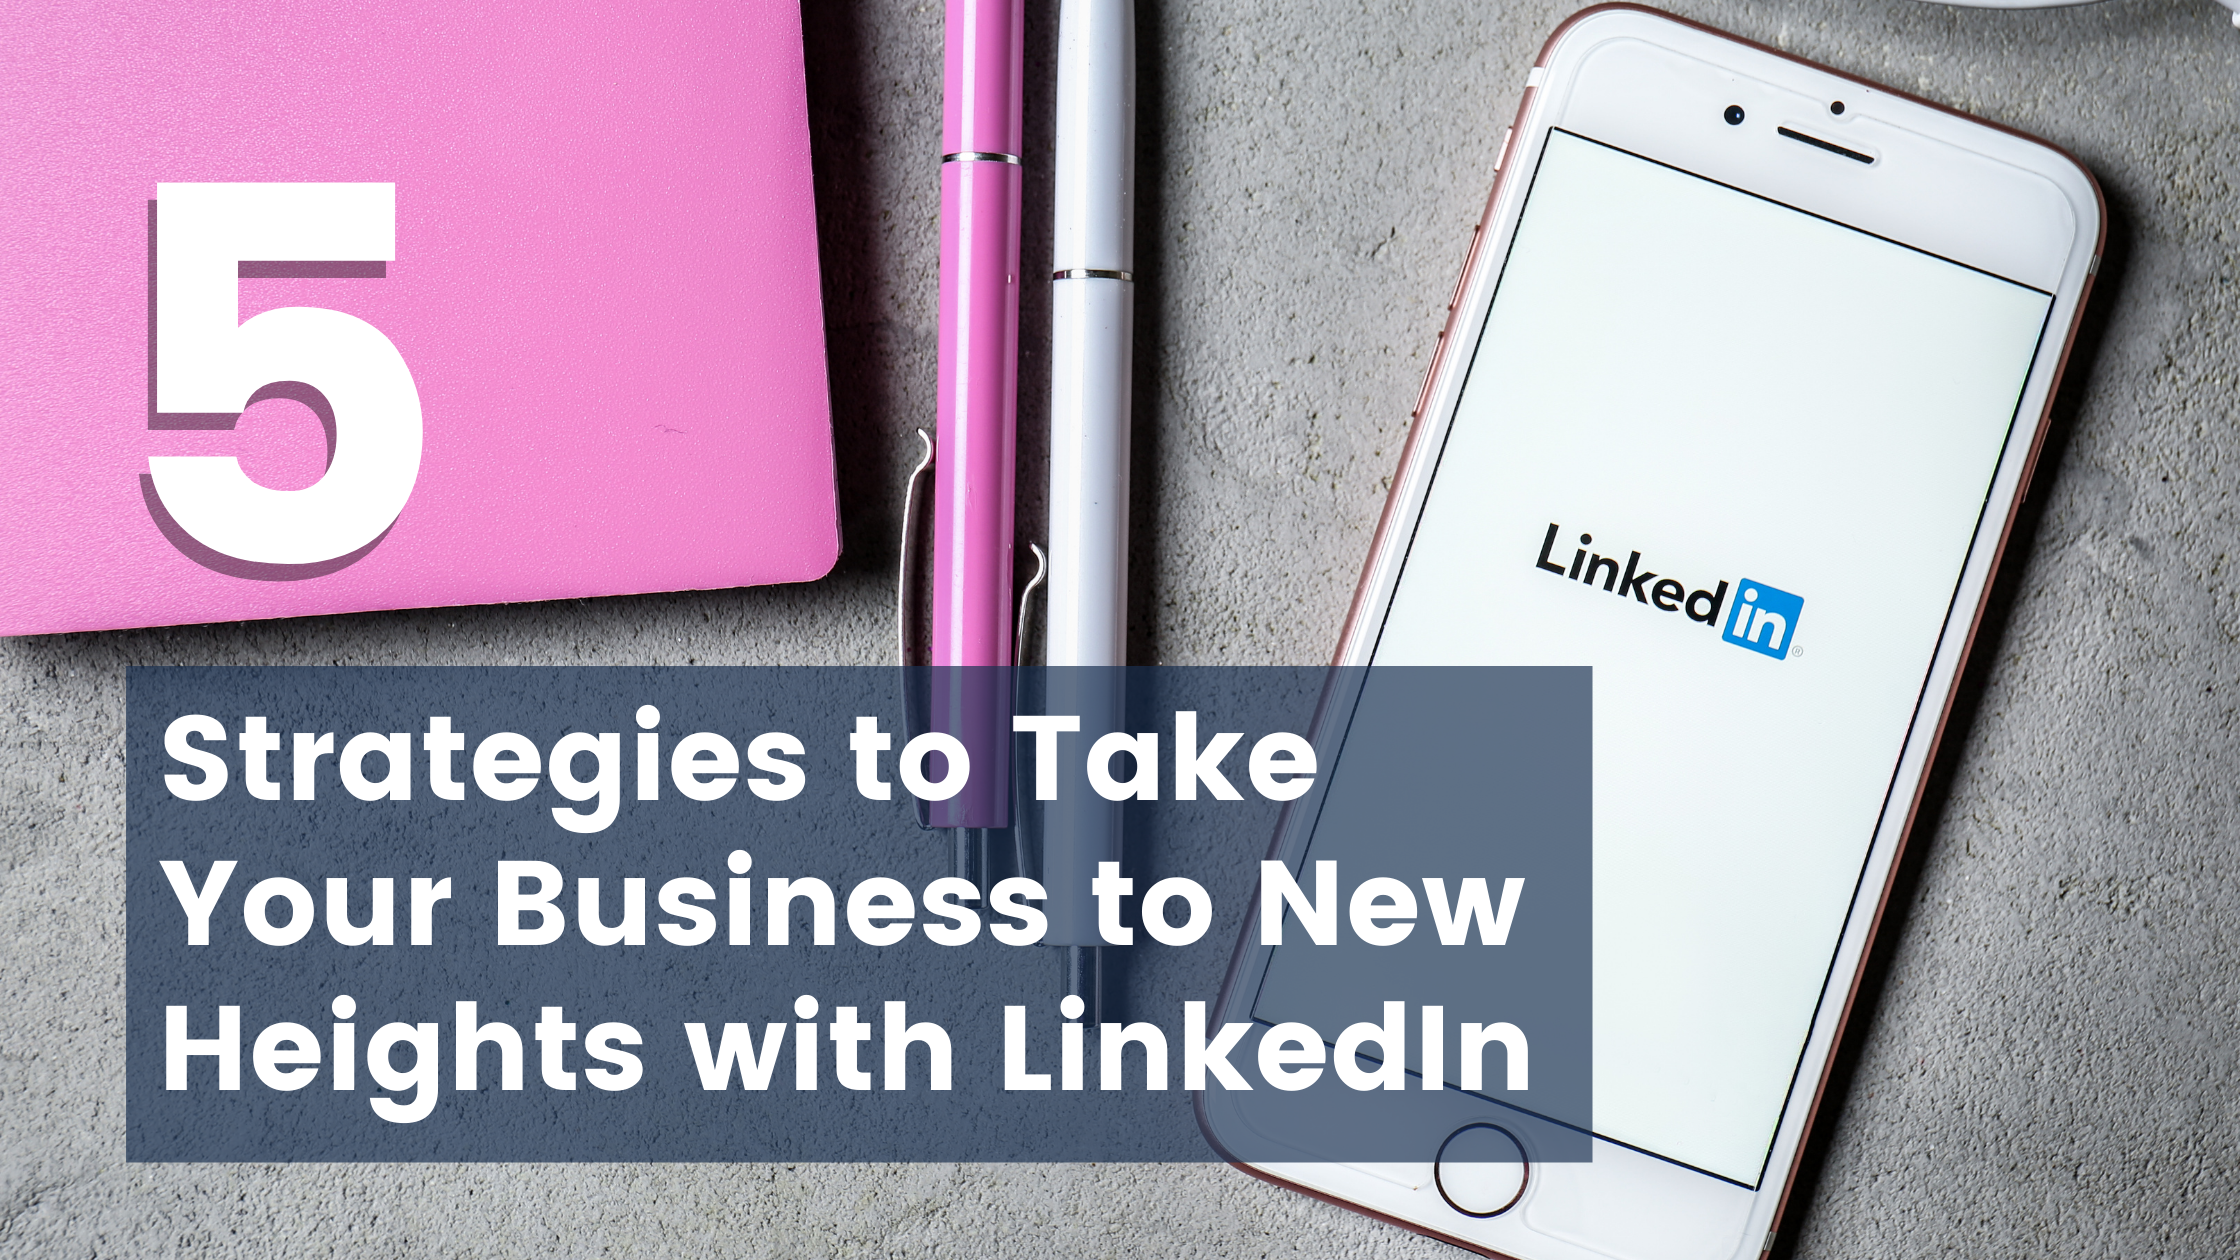 5 Strategies to Take Your Business to New Heights With LinkedIn